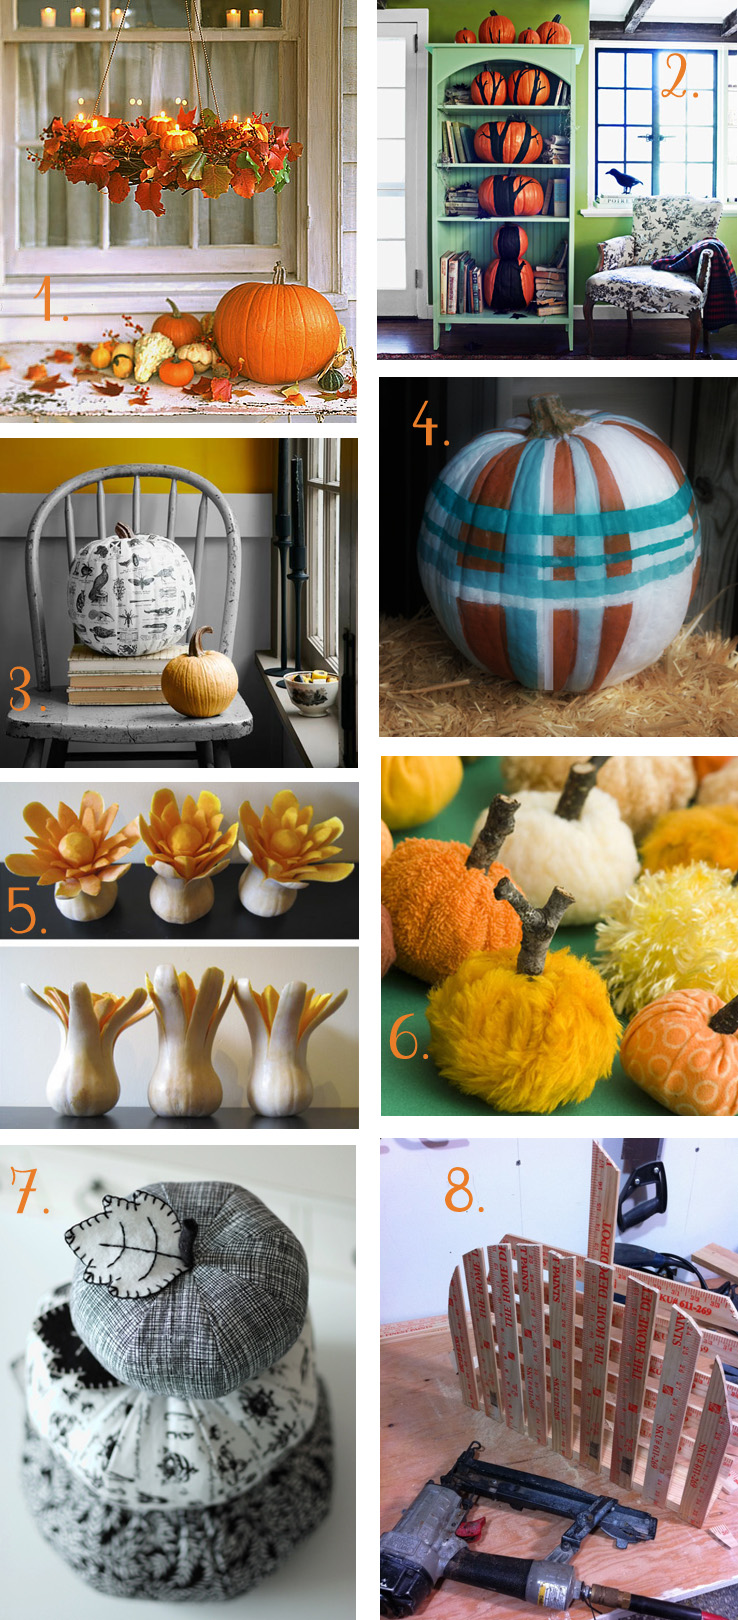 Pumpkin Decorating: alternatives to pumpkin carving